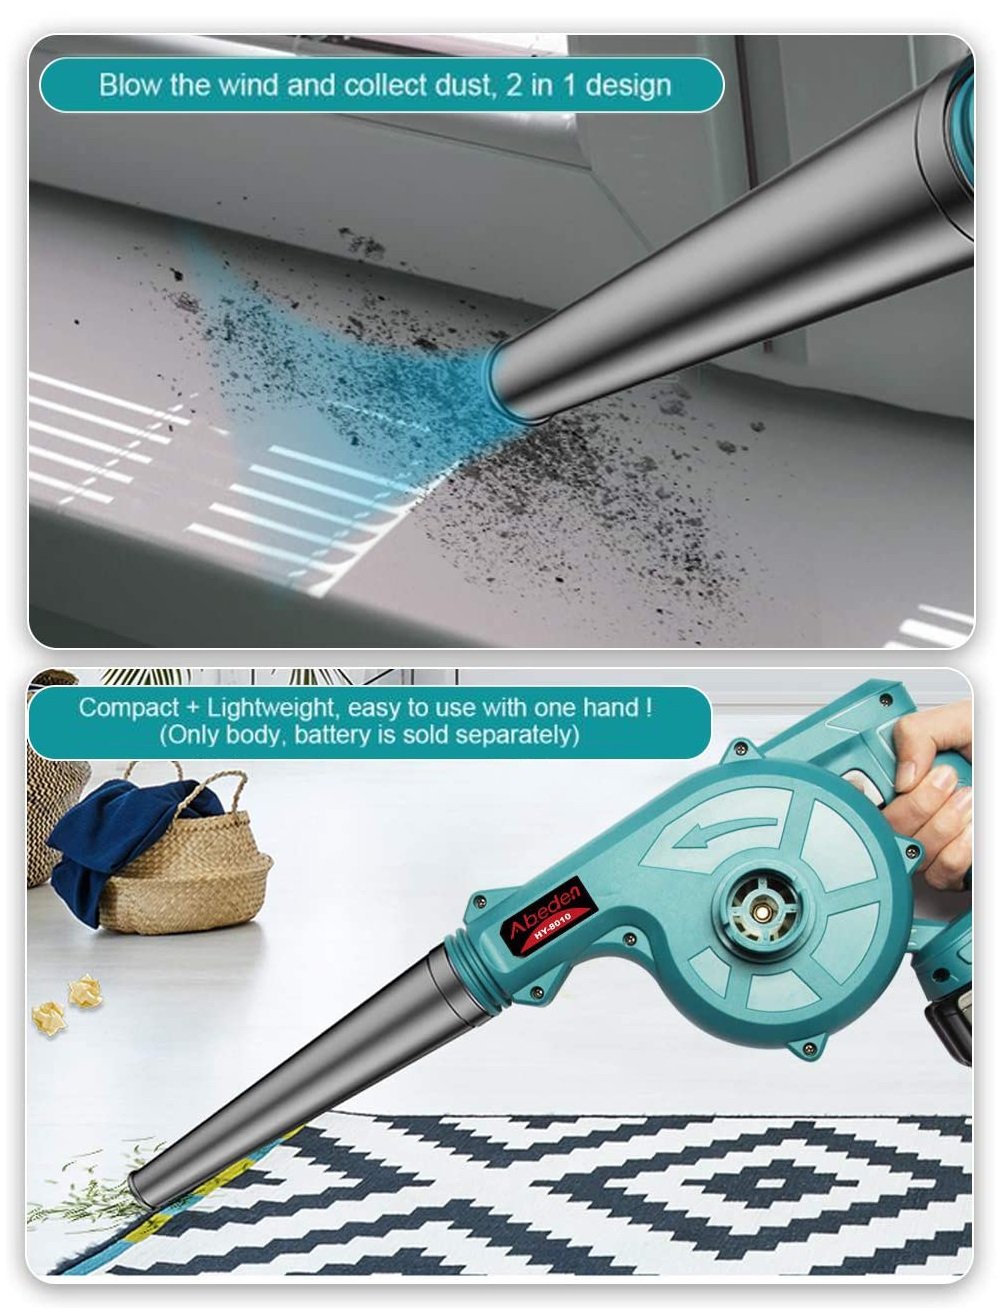 Abeden Computer Blower Hand Tool Power Vacuum 18V Blowing No Air Operat Dust Blower Cordless For Collector Dust Battery Clean